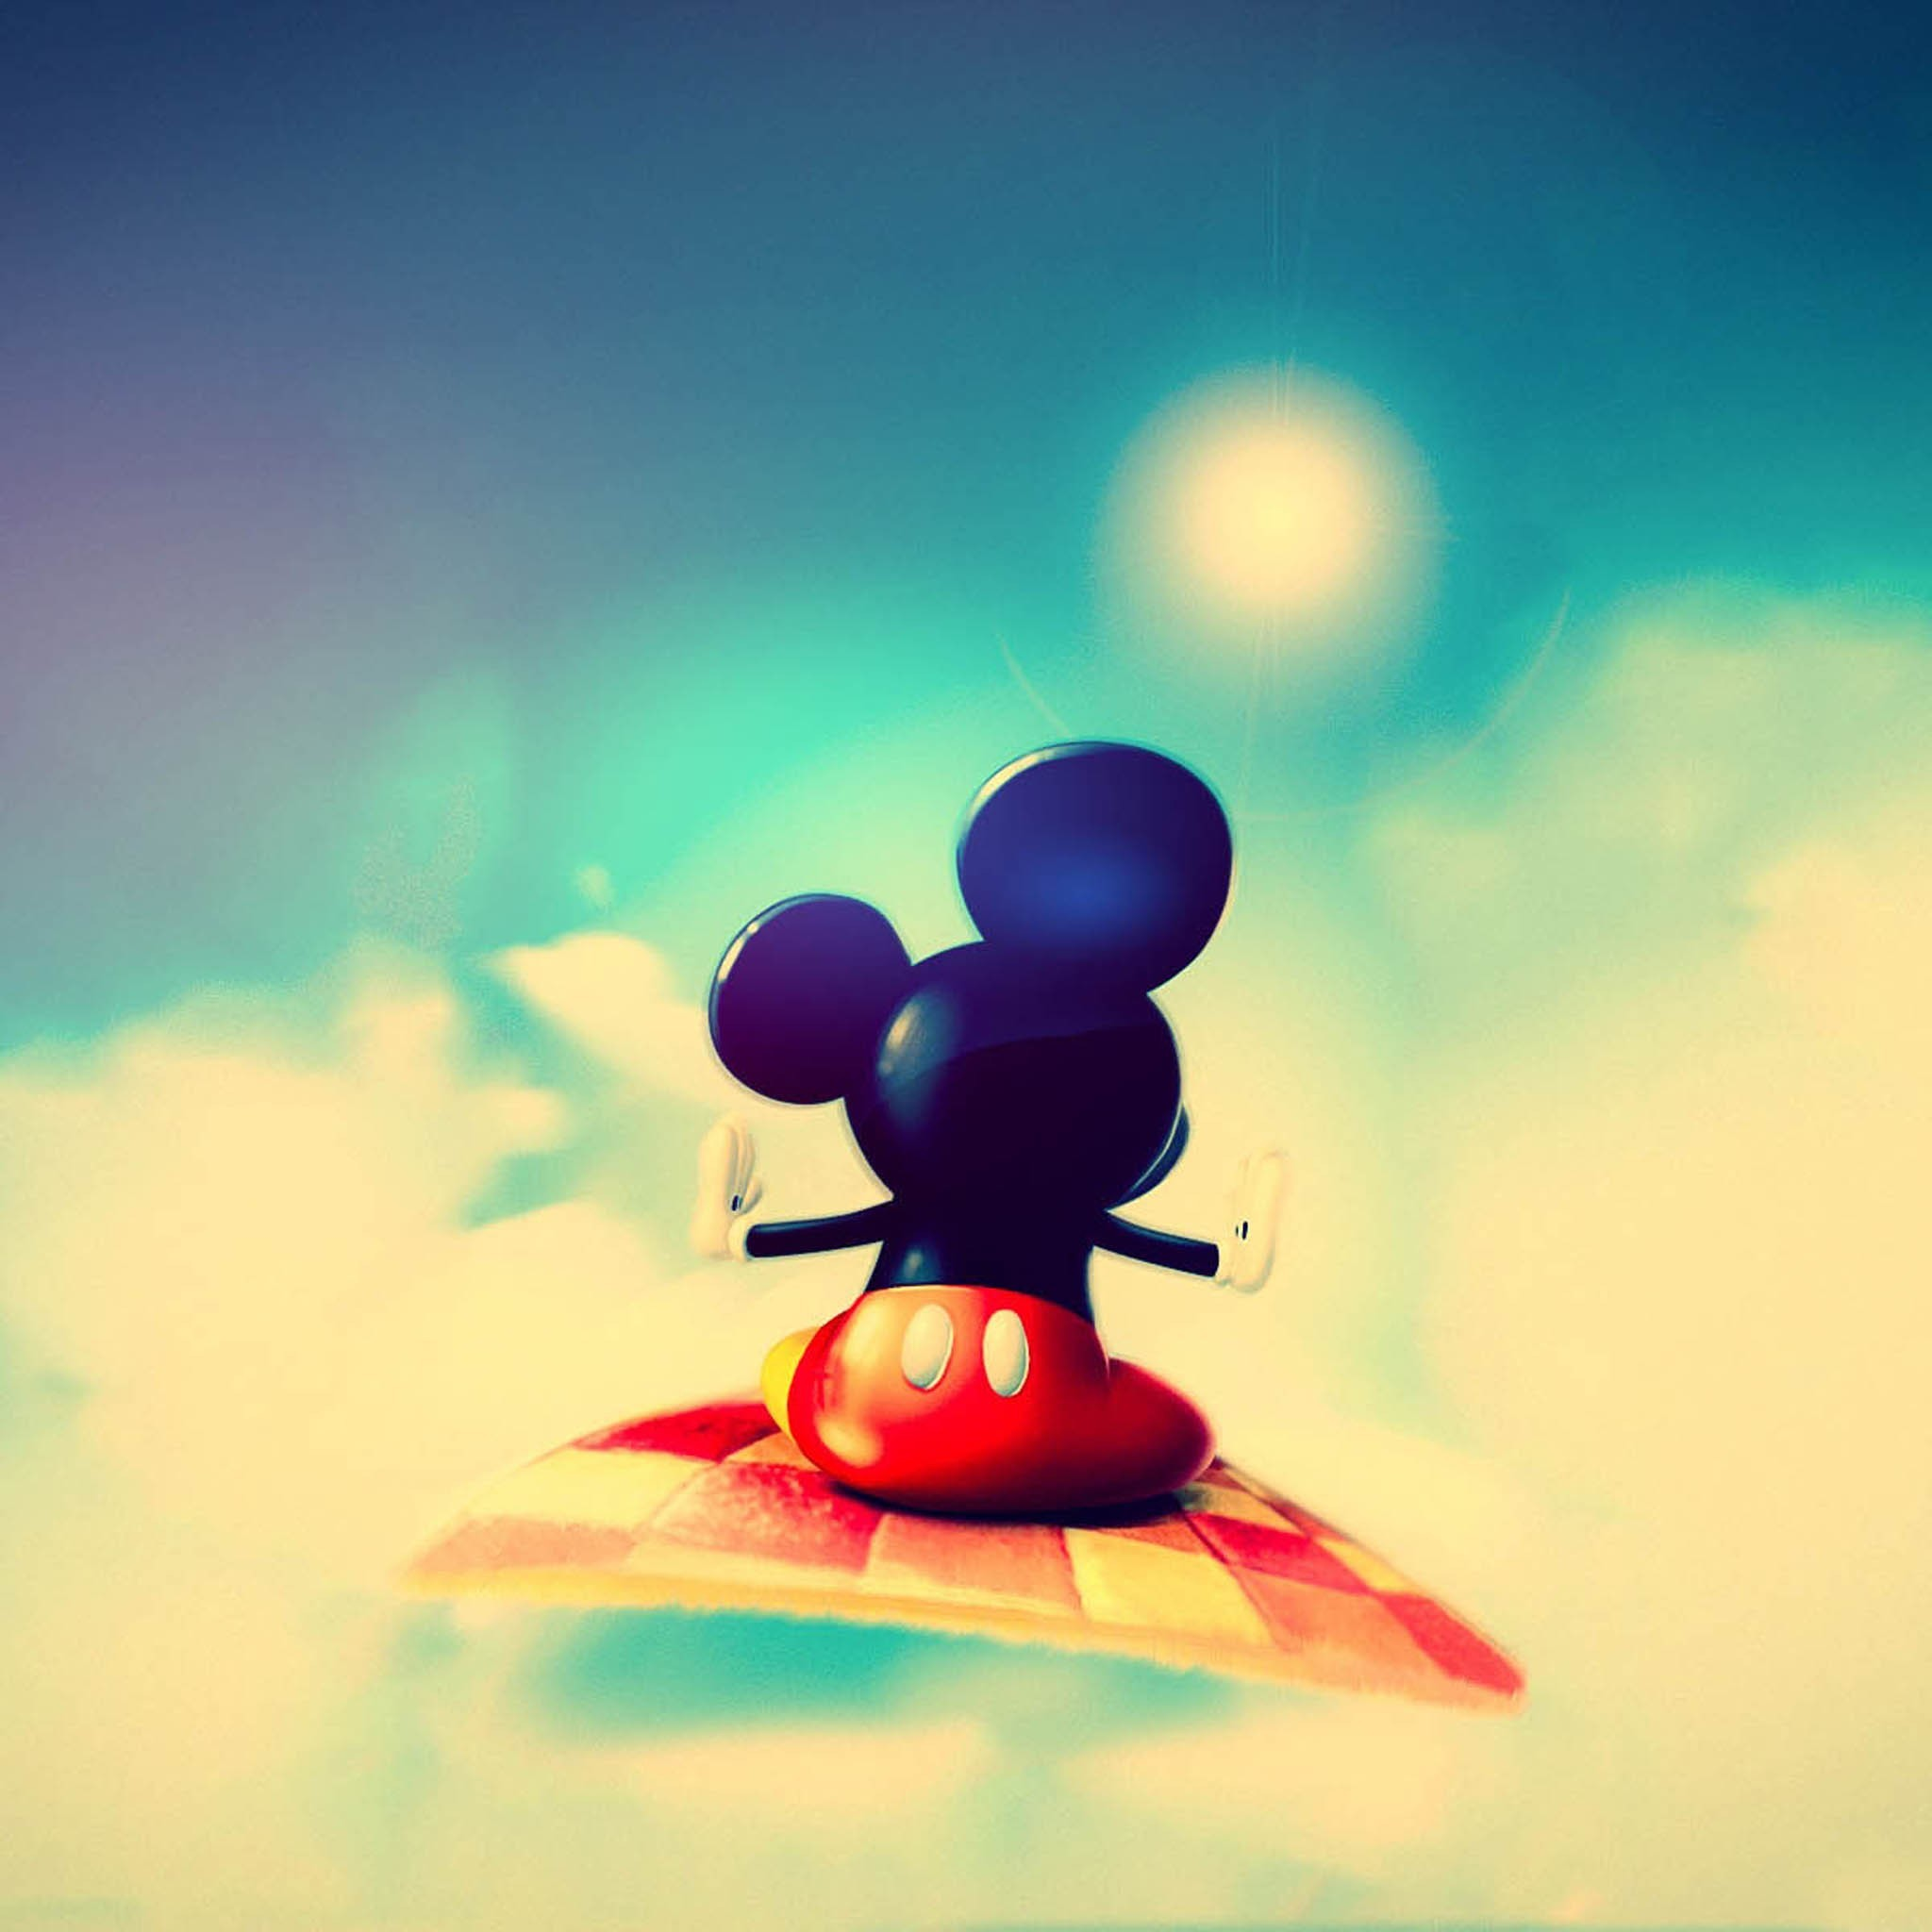 2048x2048 hd-wallpaper-otife-cute-mickey-mouse-_49c87253547644f86b976d59e6fa3701_raw.jpg  (